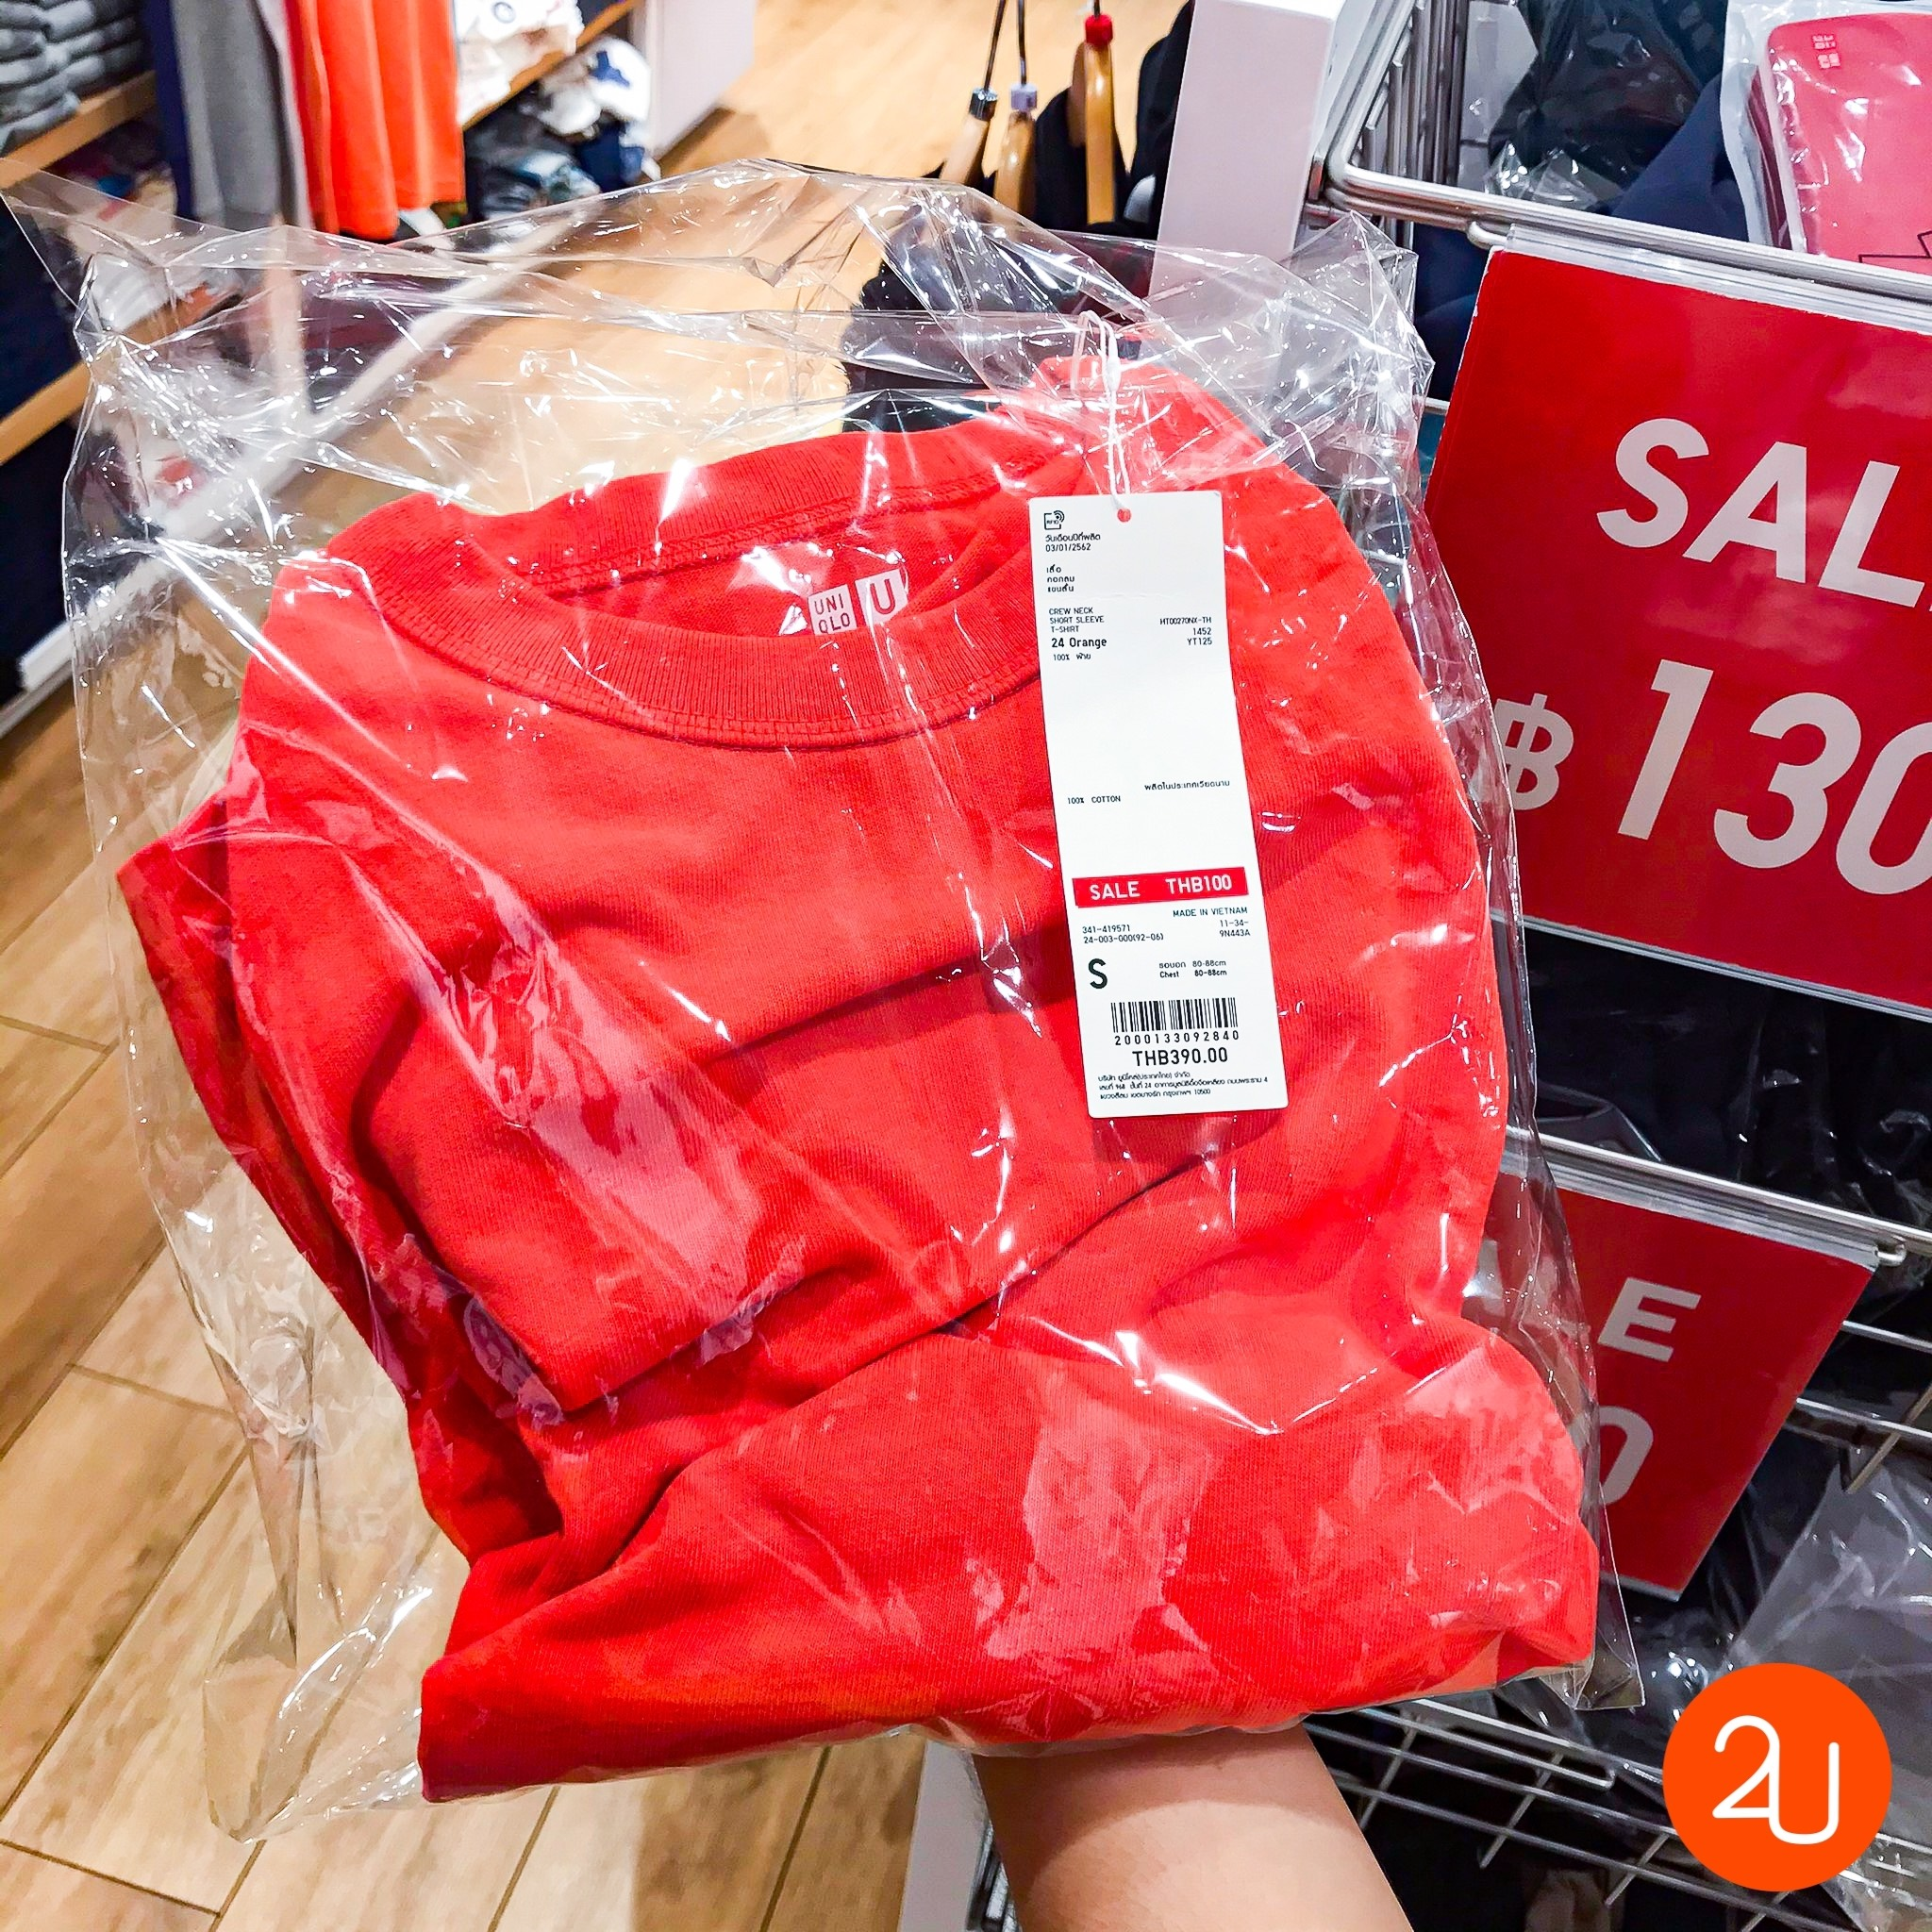 promotion-uniqlo-t-shirt-special-price-100-baht